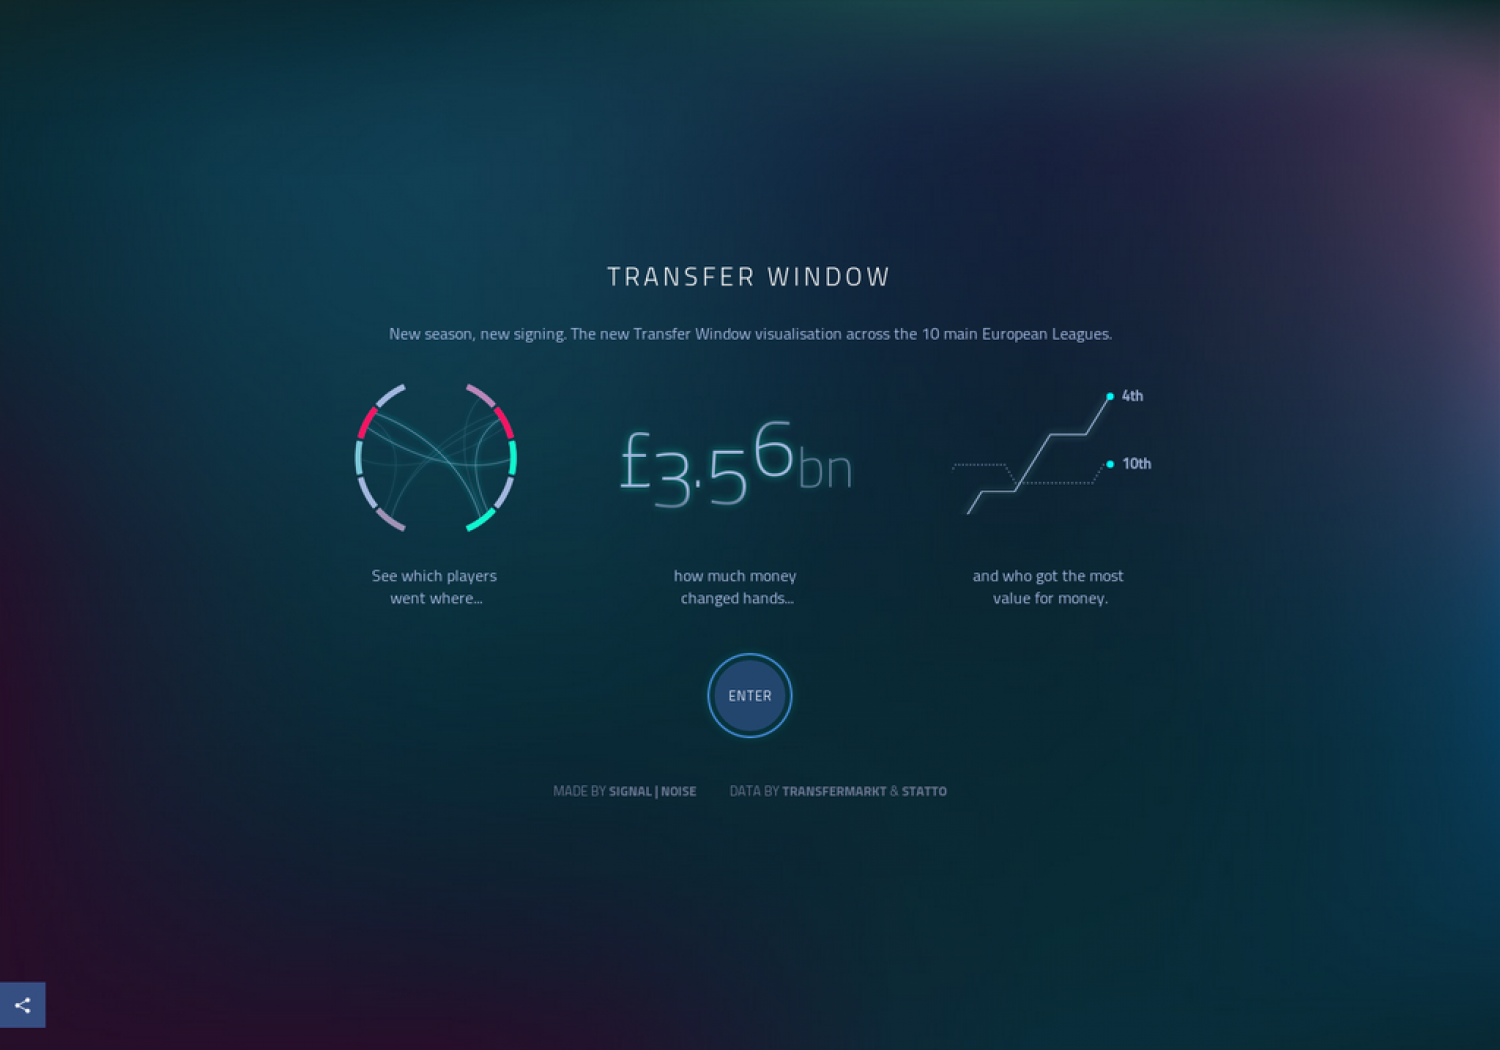 Transfer Window visualisation Infographic